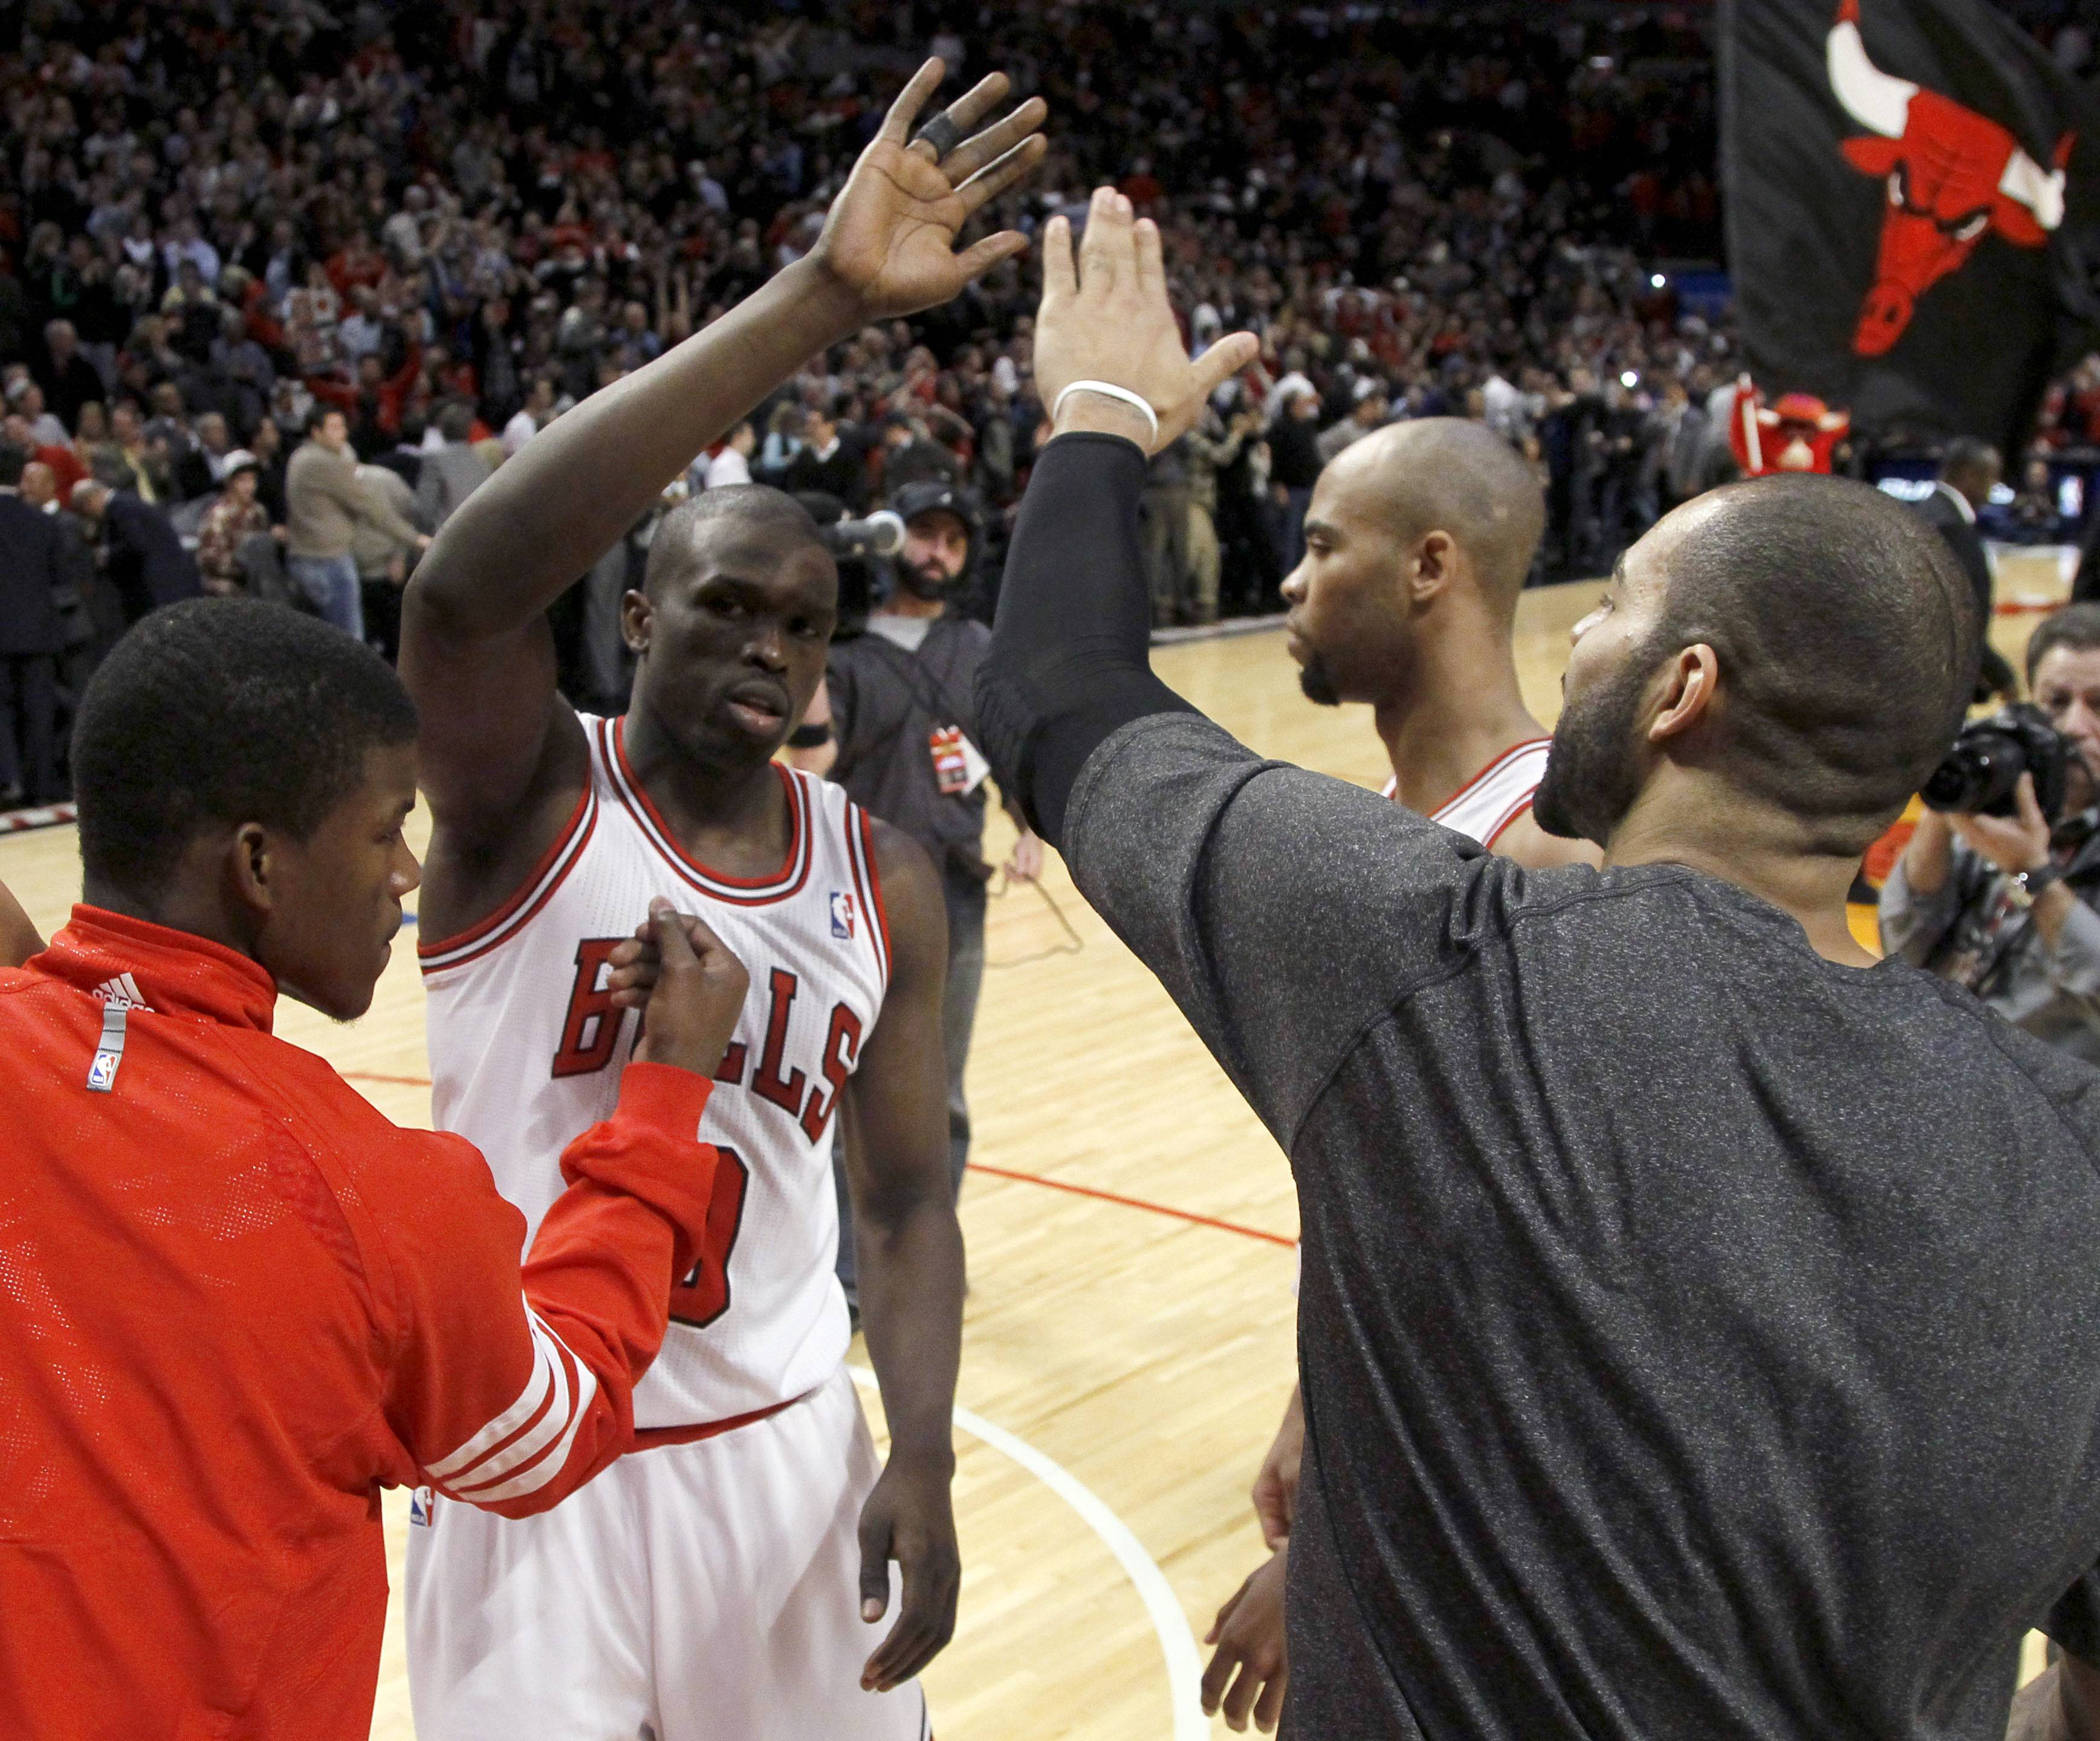 Chicago Bulls small forward Luol Deng, second from left, celebrates with Jimmy Butler, left, Taj Gibson, second from right, and Carlos Boozer after their 76-74 come-from-behind win over the Atlanta Hawks on Tuesday in Chicago.